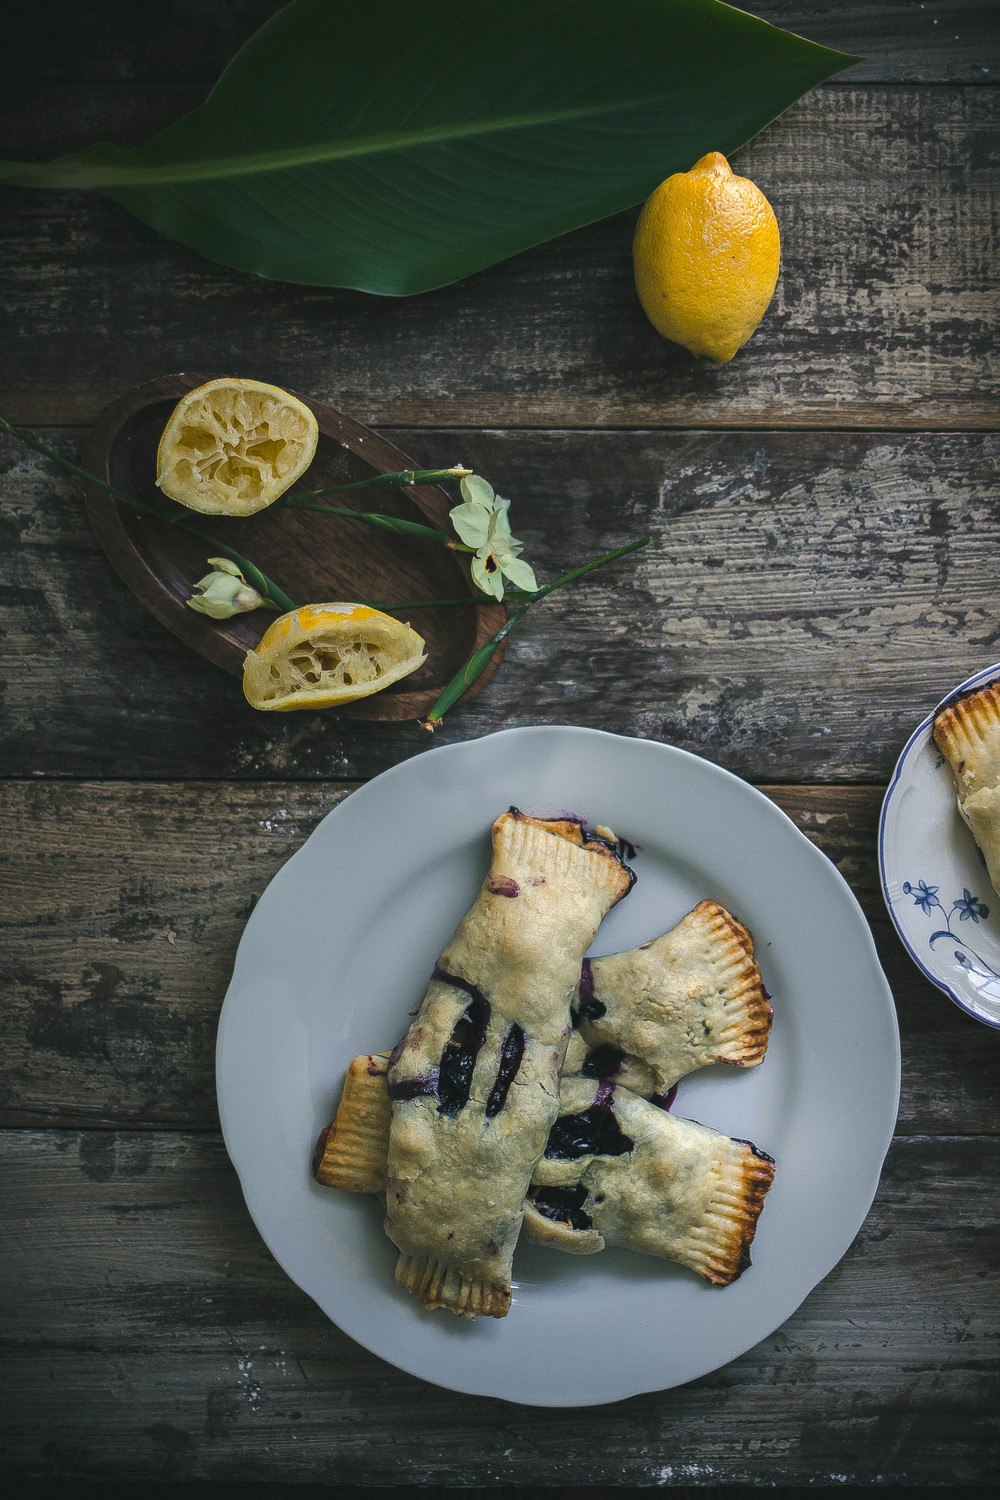 Blueberry cheddar handpies with a flaky and tender crust | from scratch, mostly